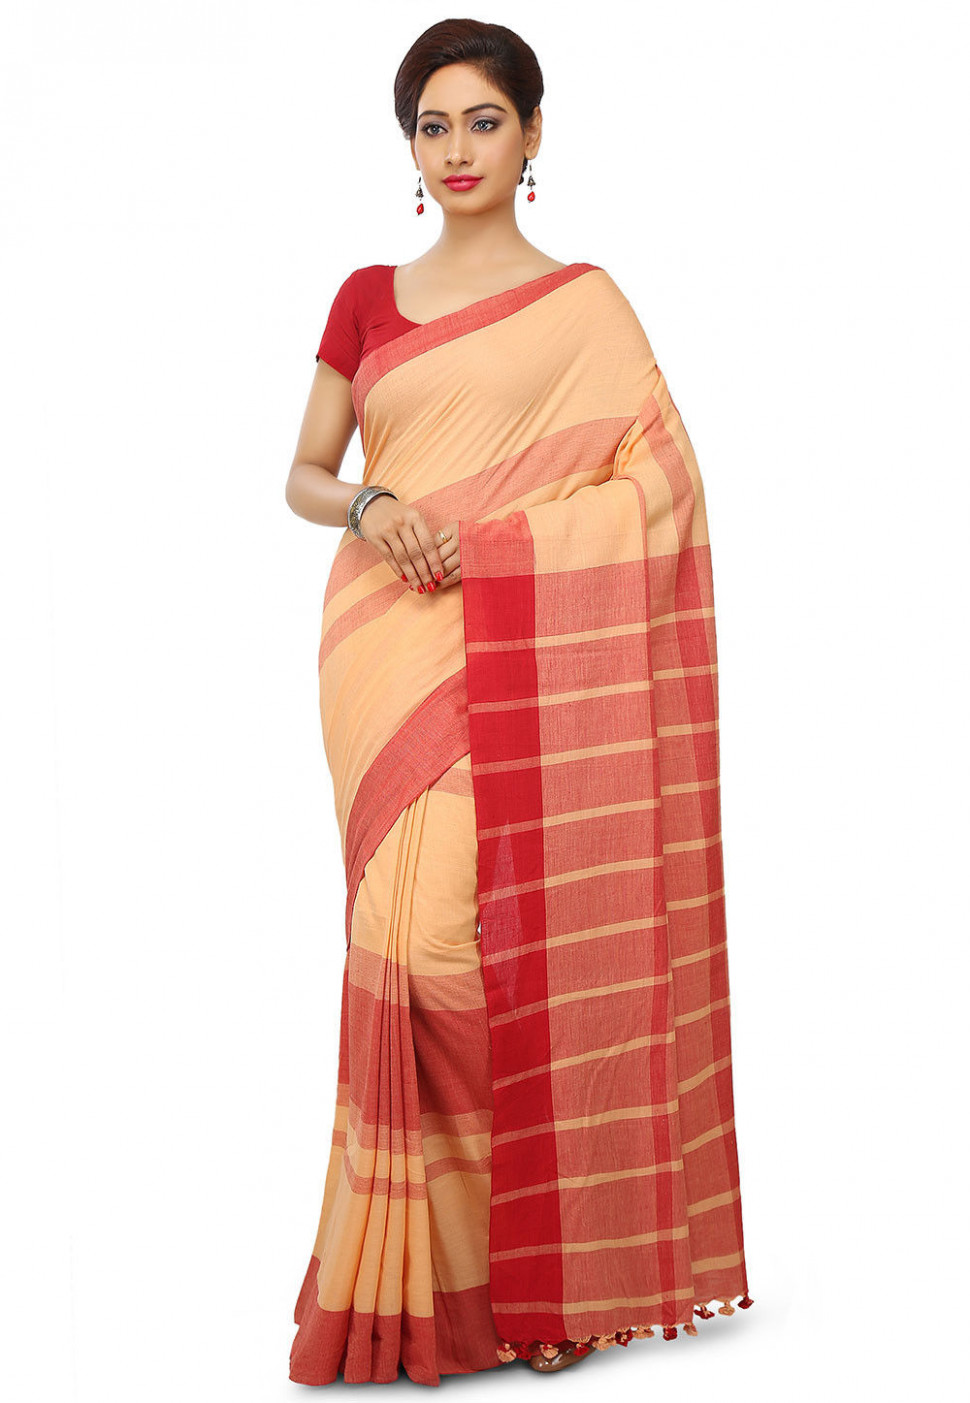 Woven Khadi Cotton Saree in Peach and Red : SHXA153